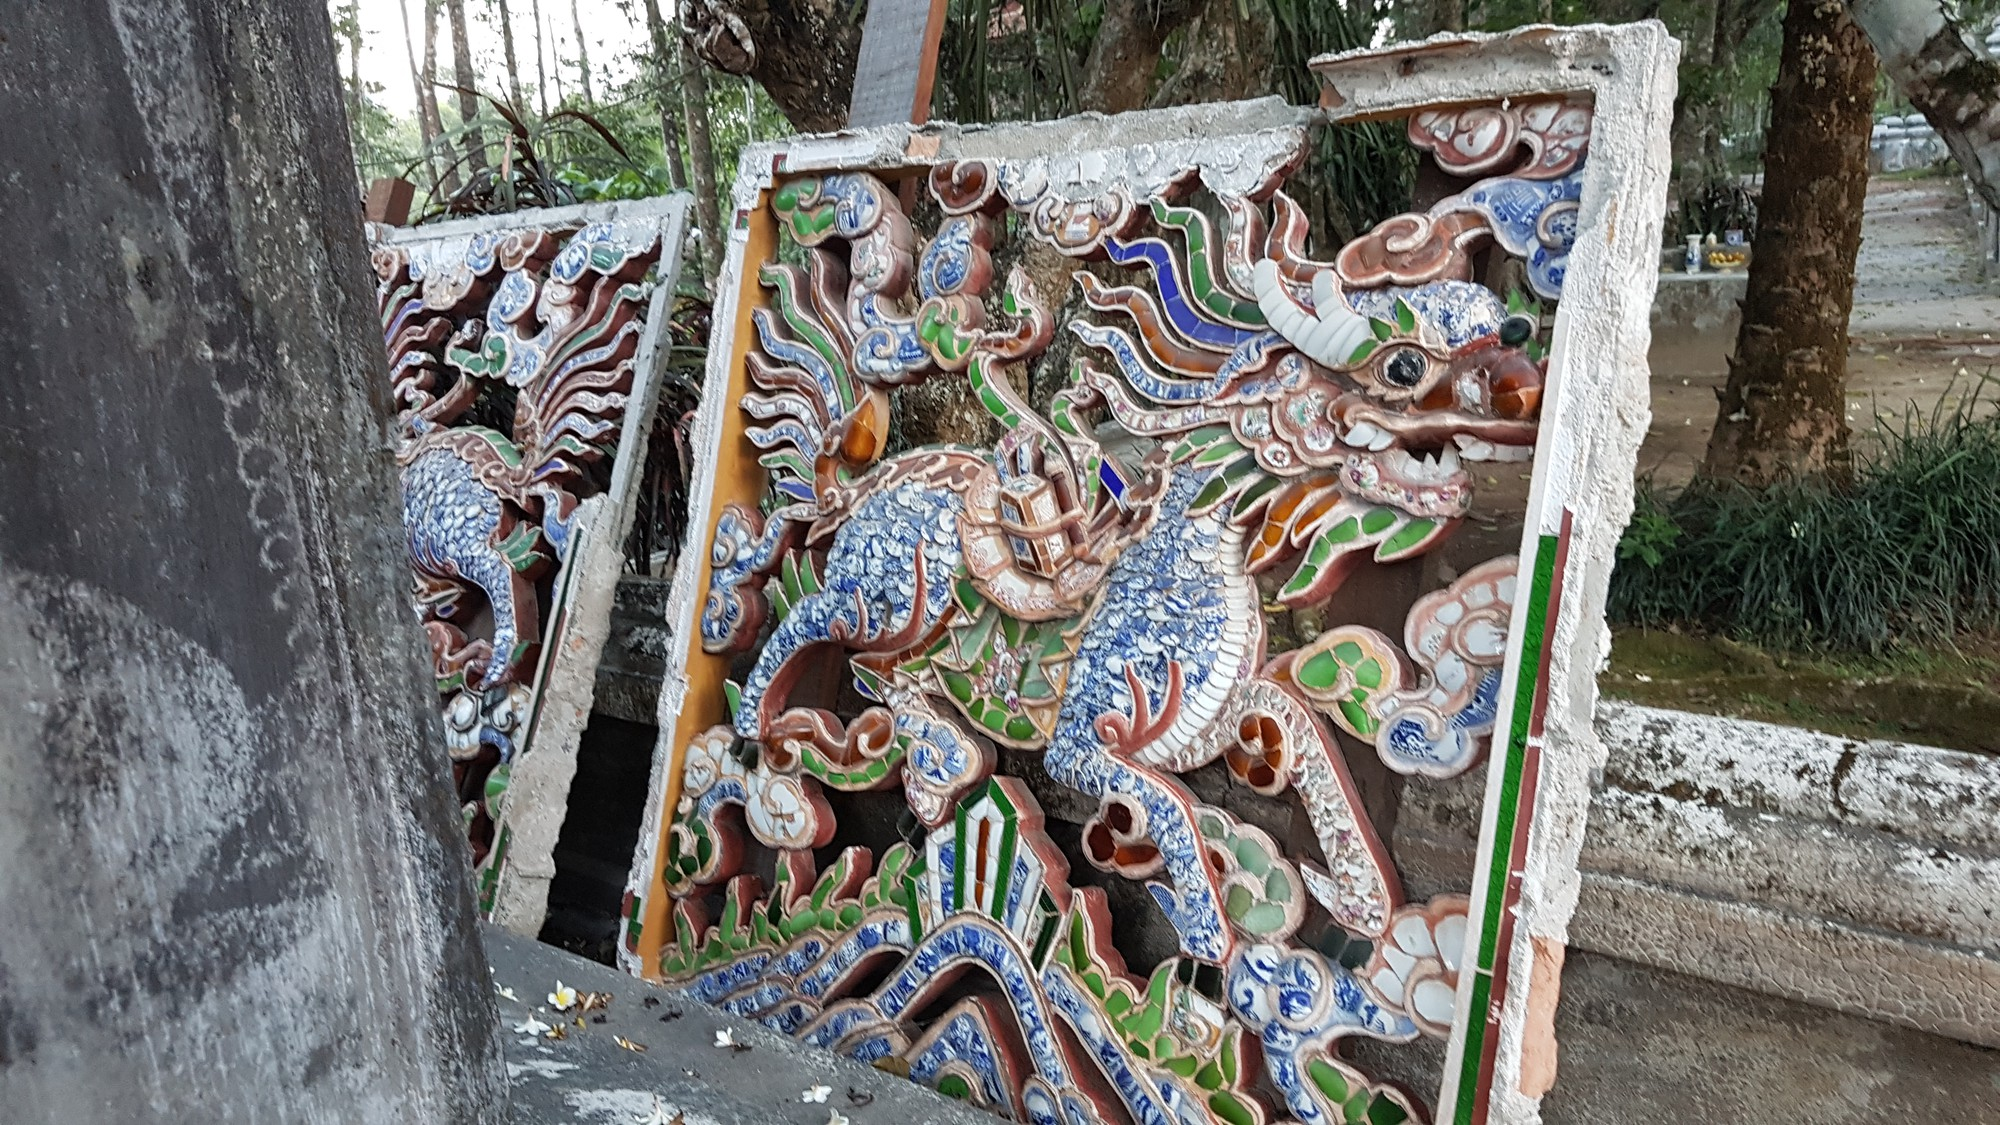 A ceramic-paved wall sculpture removed from the main structure of the Tu Hieu Pagoda in Hue, Vietnam. Photo: Thai Loc / Tuoi Tre